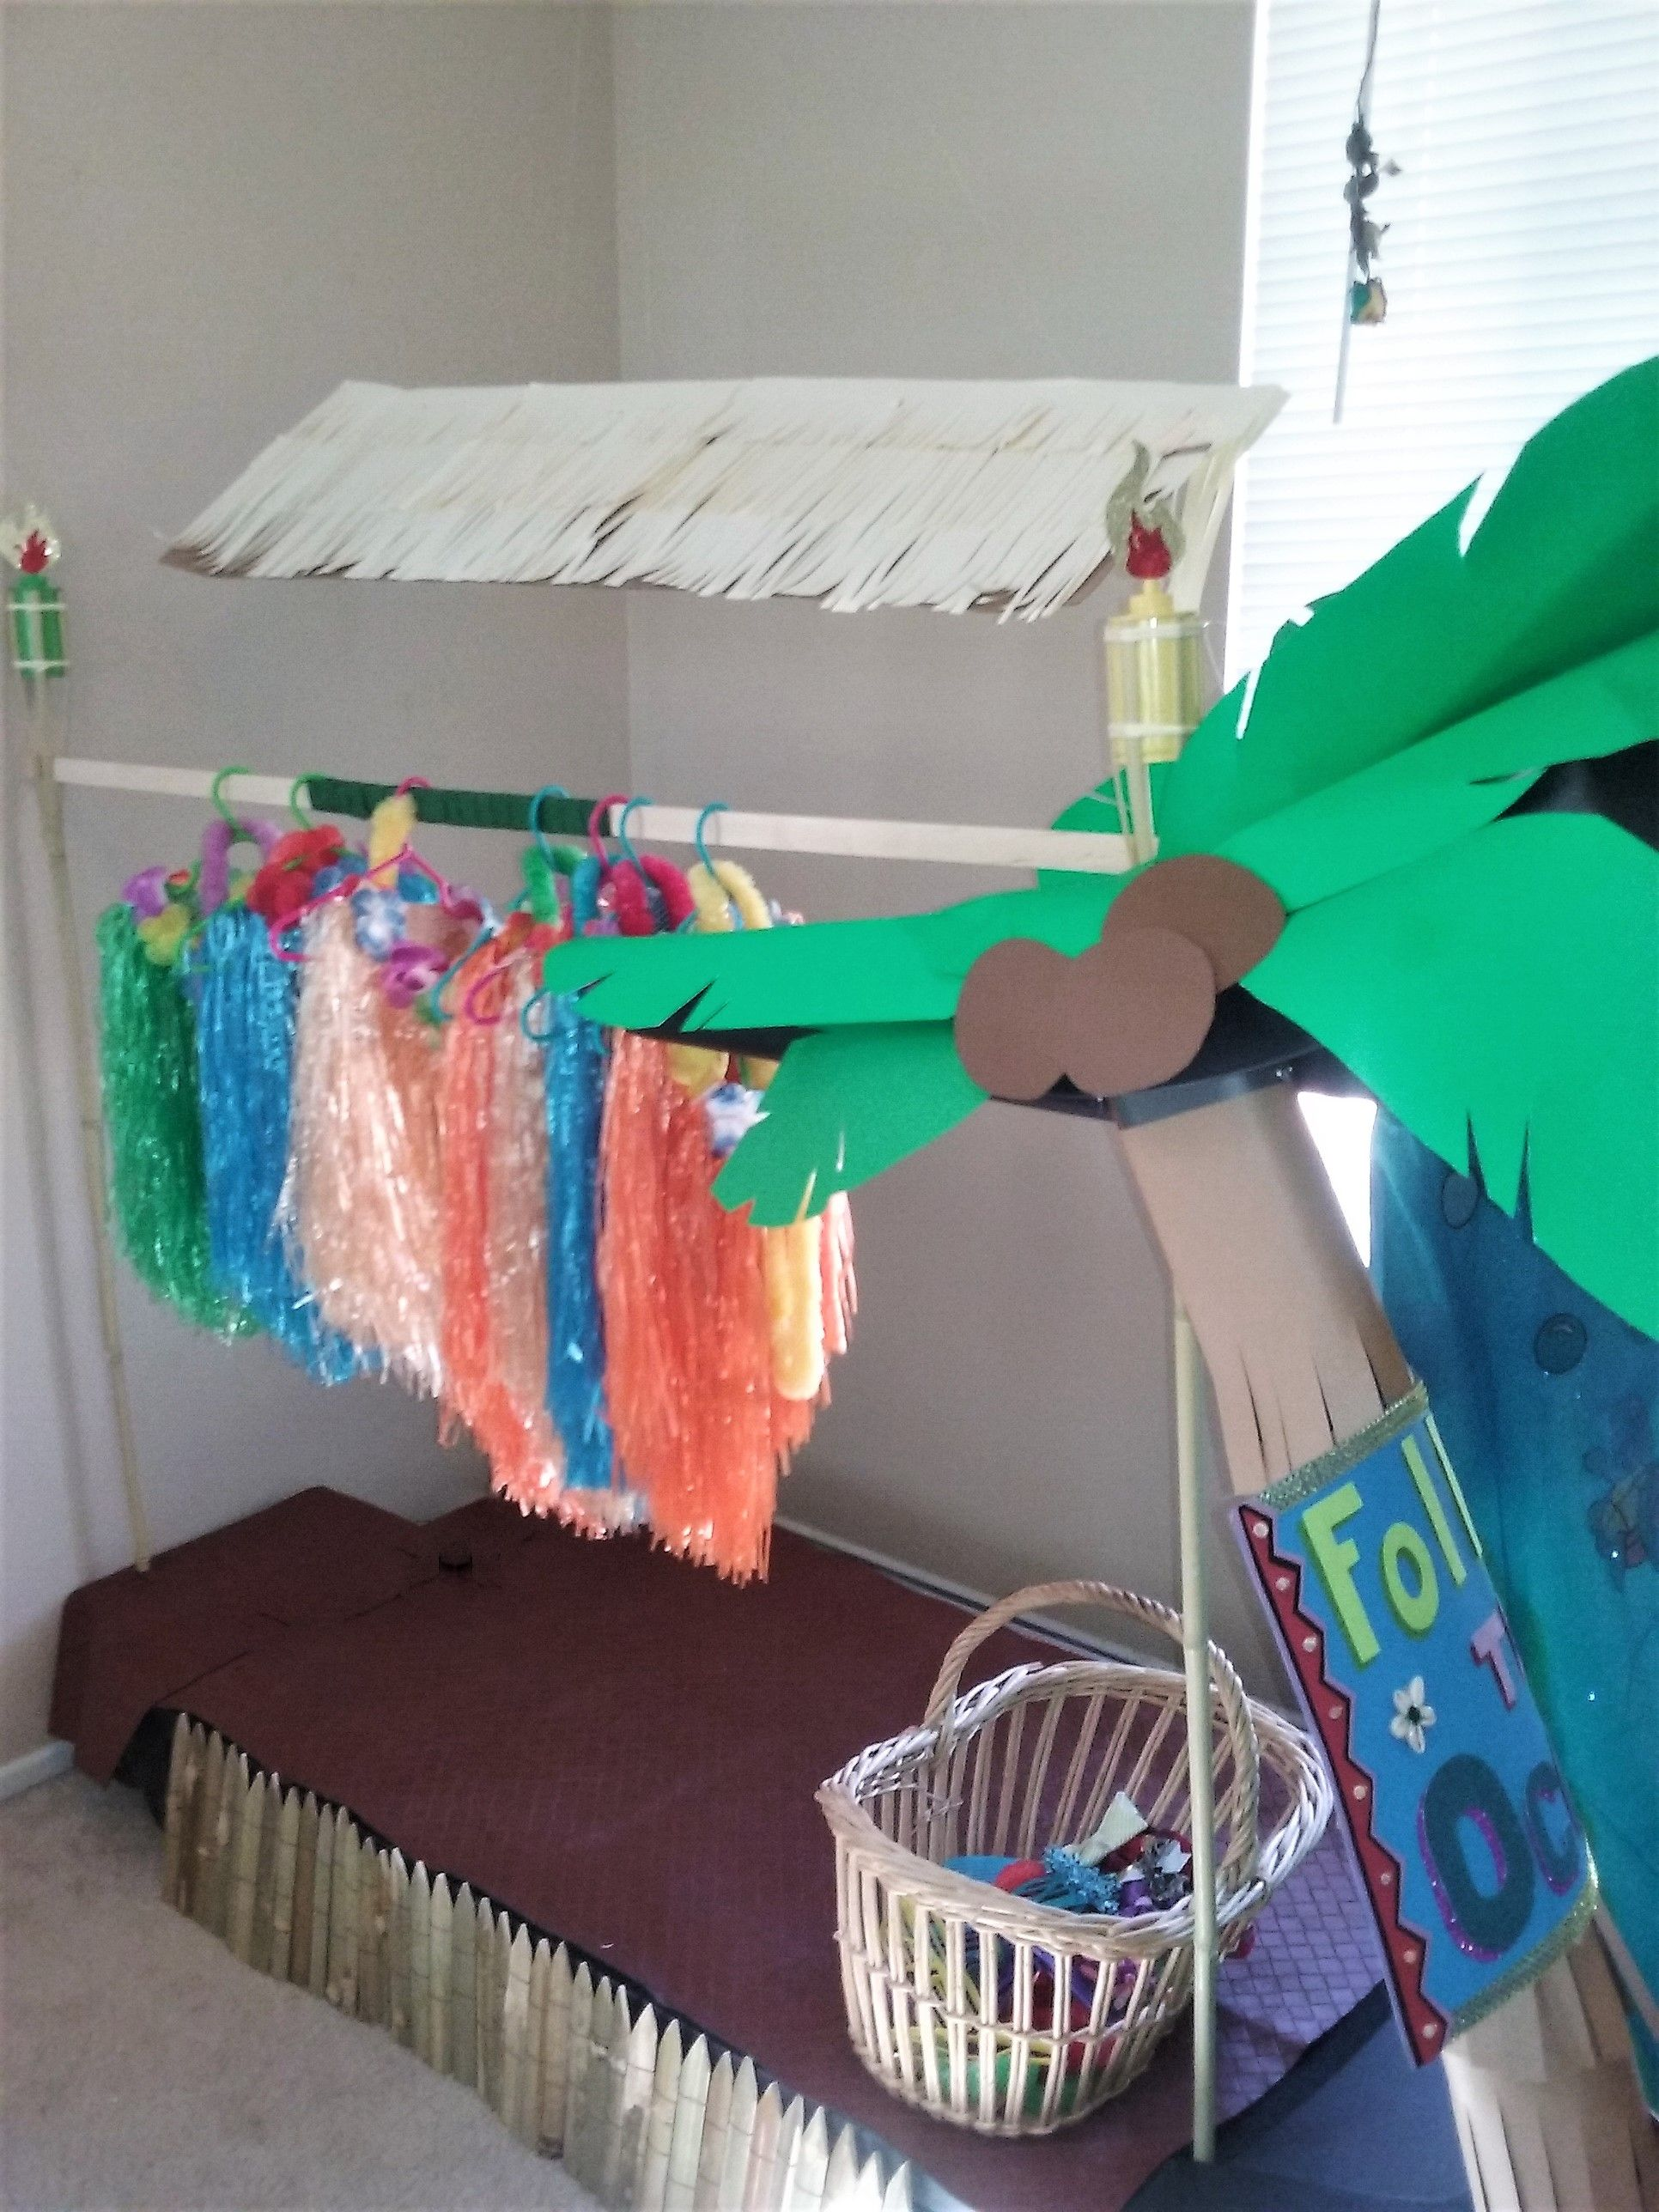 Favors dress up station. skirt and leis Custom decorations created around a  treadmill that was too heavy to move! Tiki torches, cabana and palm trees!